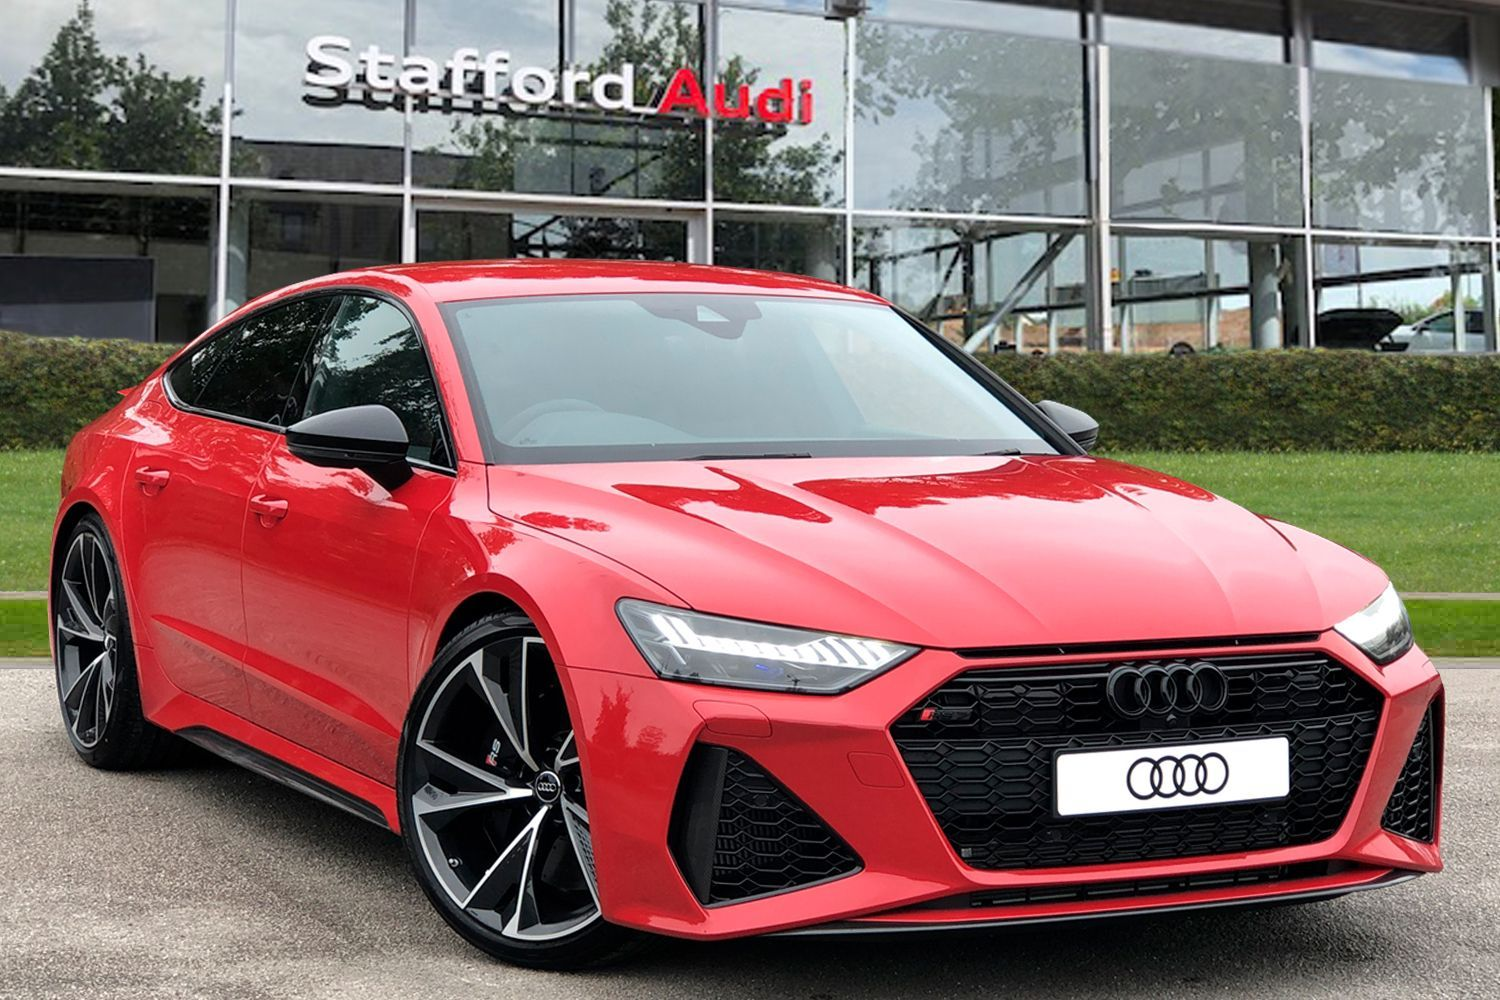 Red Audi Rs7 Used Cars For Sale Autotrader Uk